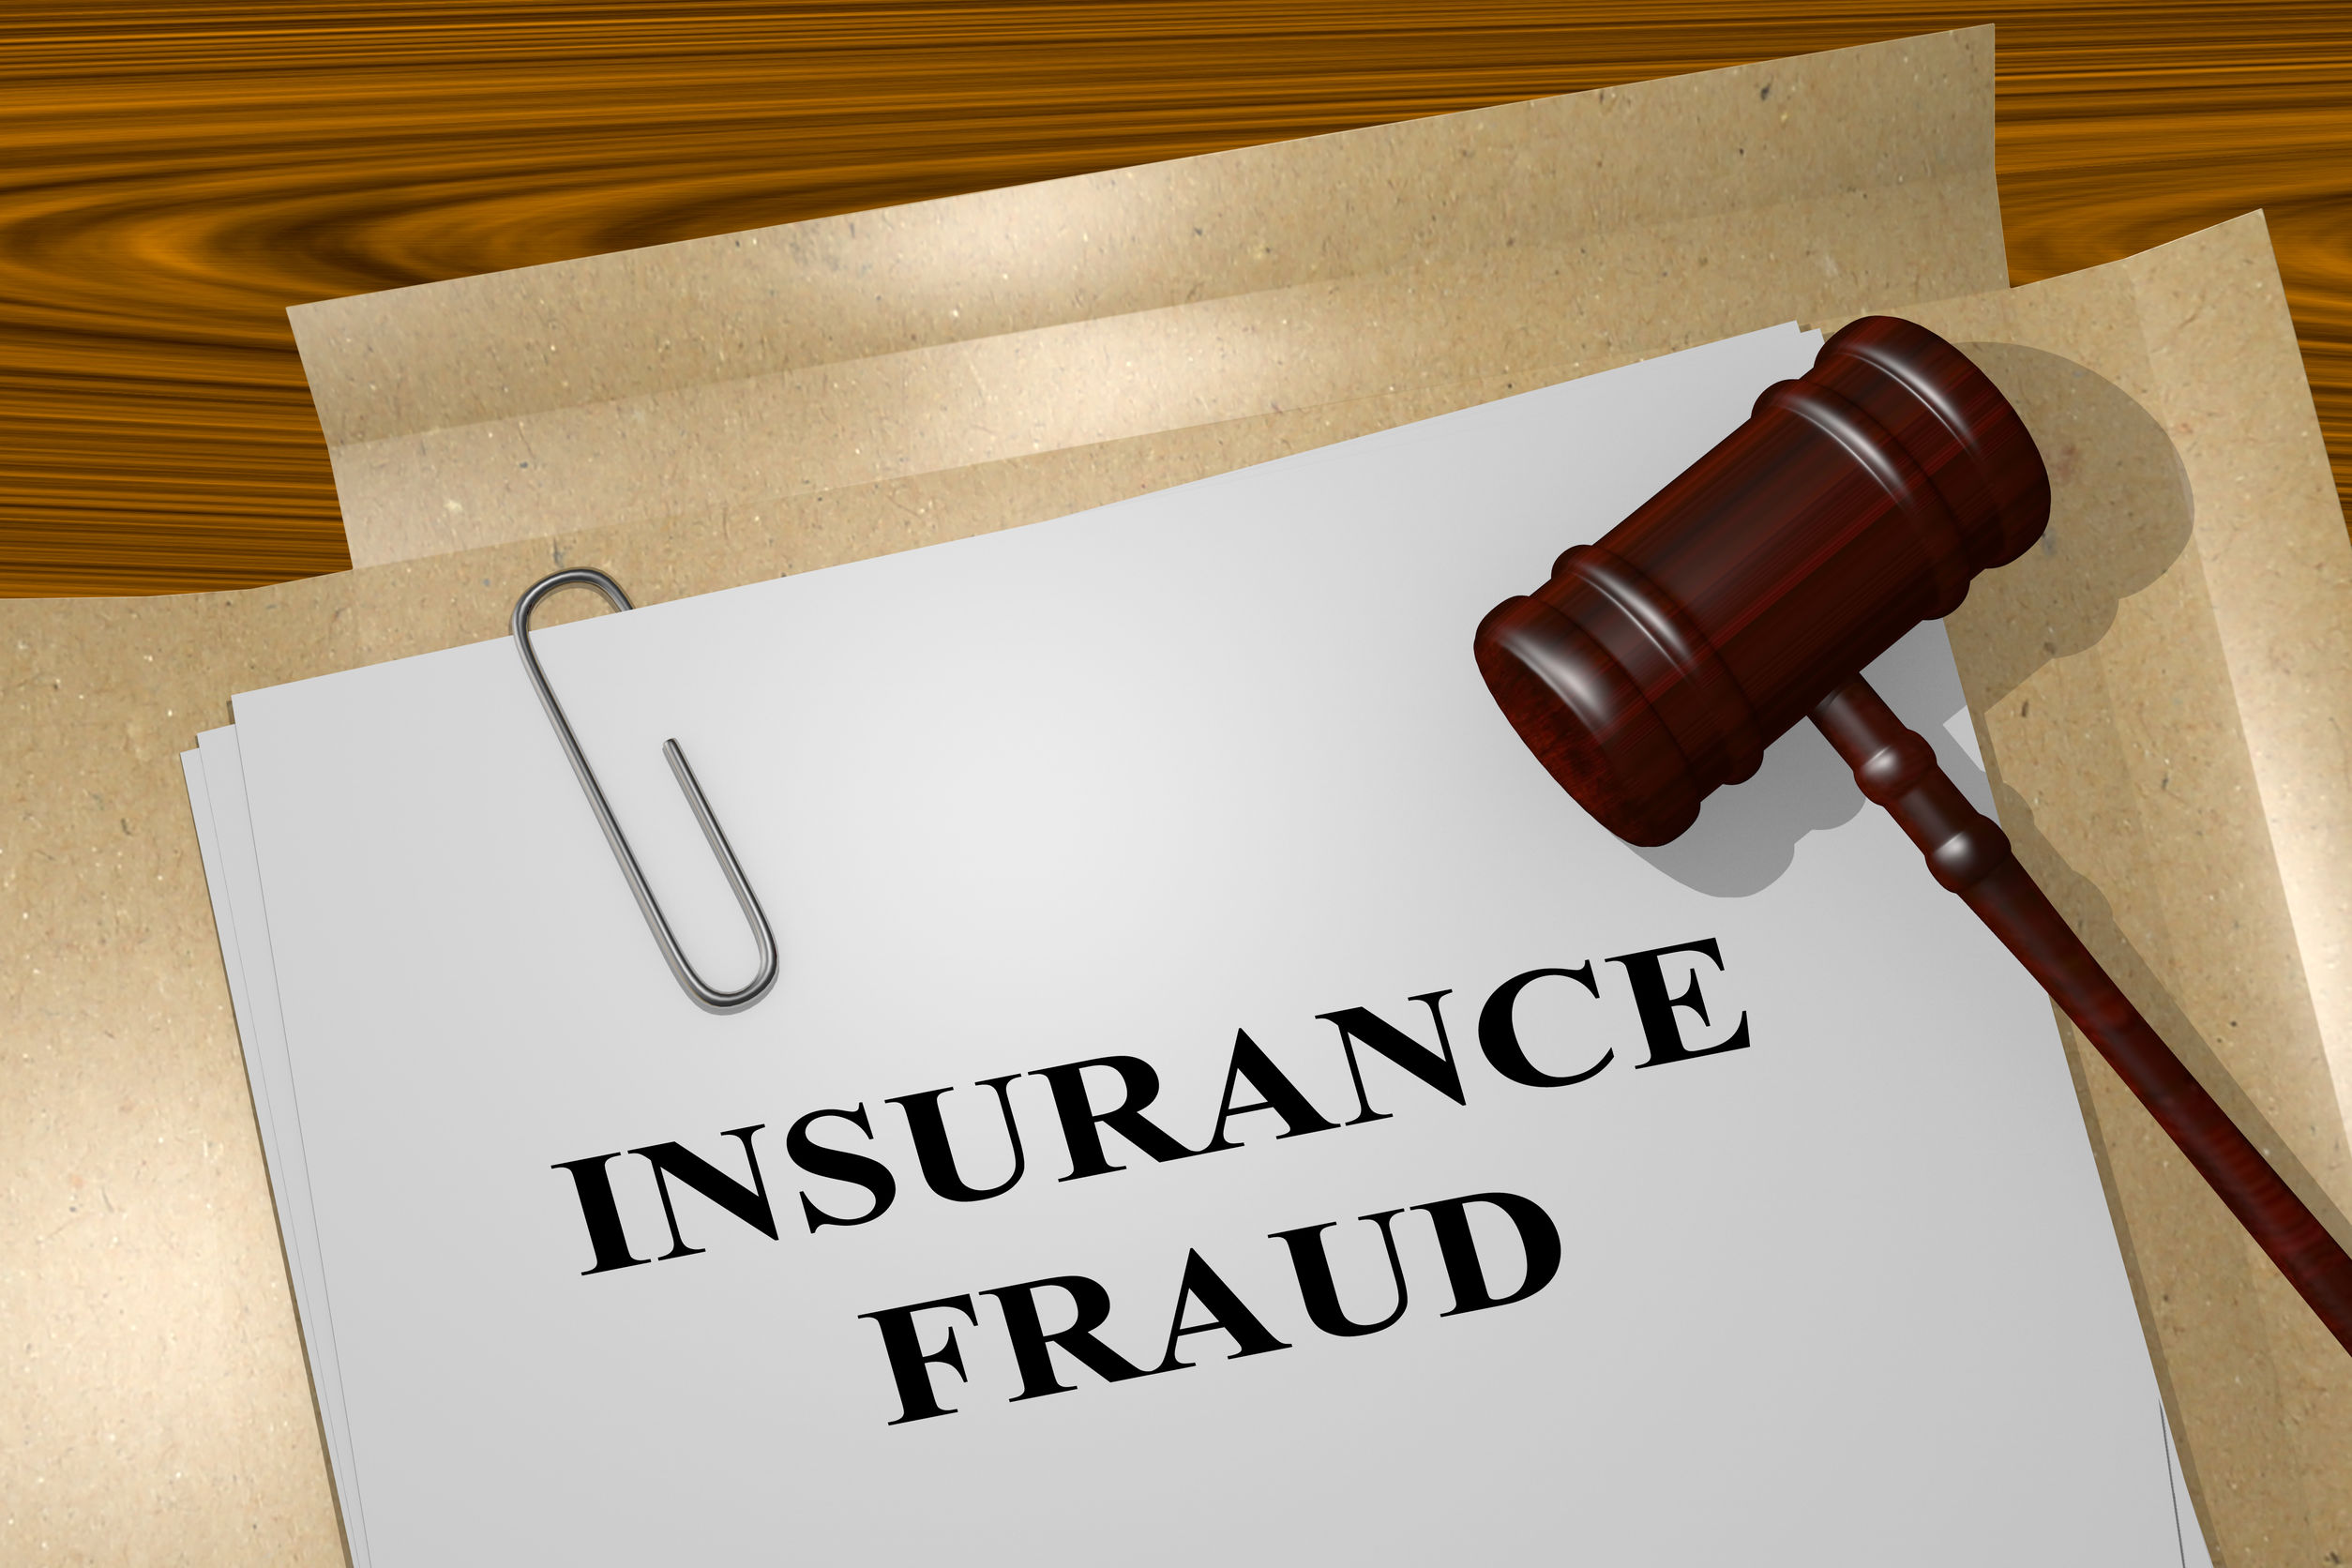 West Palm Beach Insurance Fraud Lawyer